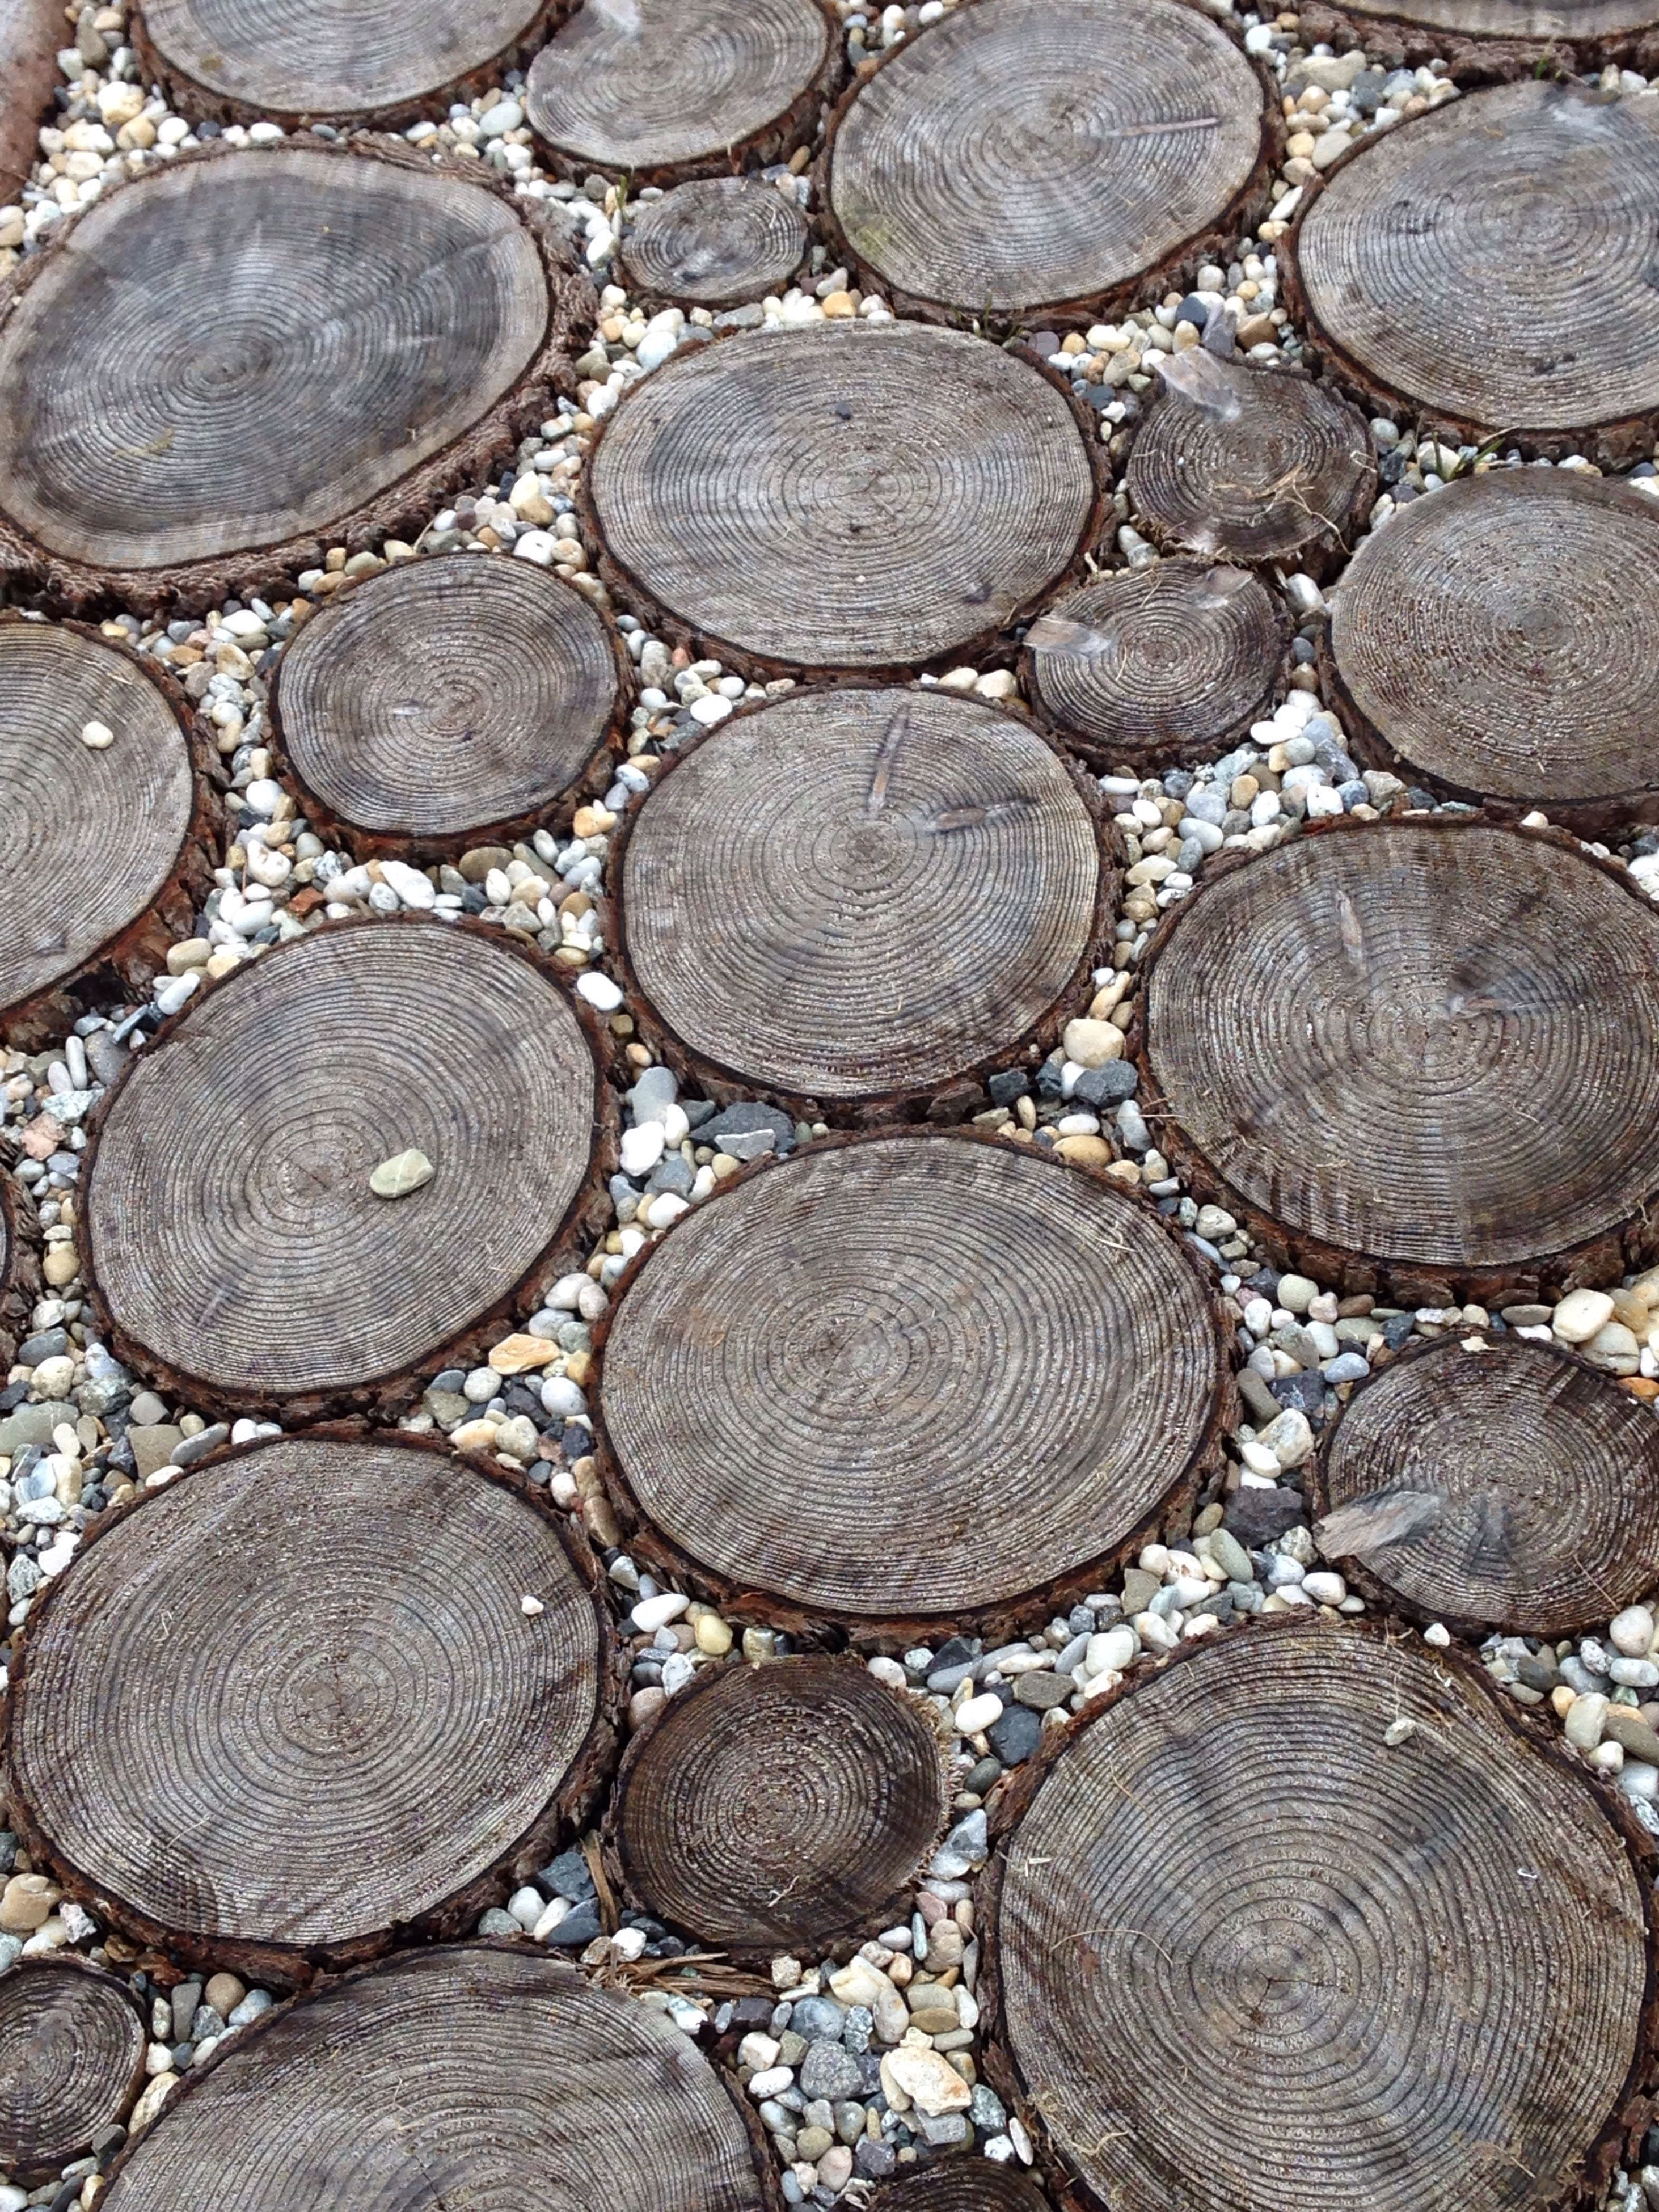 full frame, backgrounds, pattern, abundance, textured, large group of objects, circle, high angle view, close-up, repetition, design, stone - object, cobblestone, no people, outdoors, geometric shape, stack, shape, day, detail